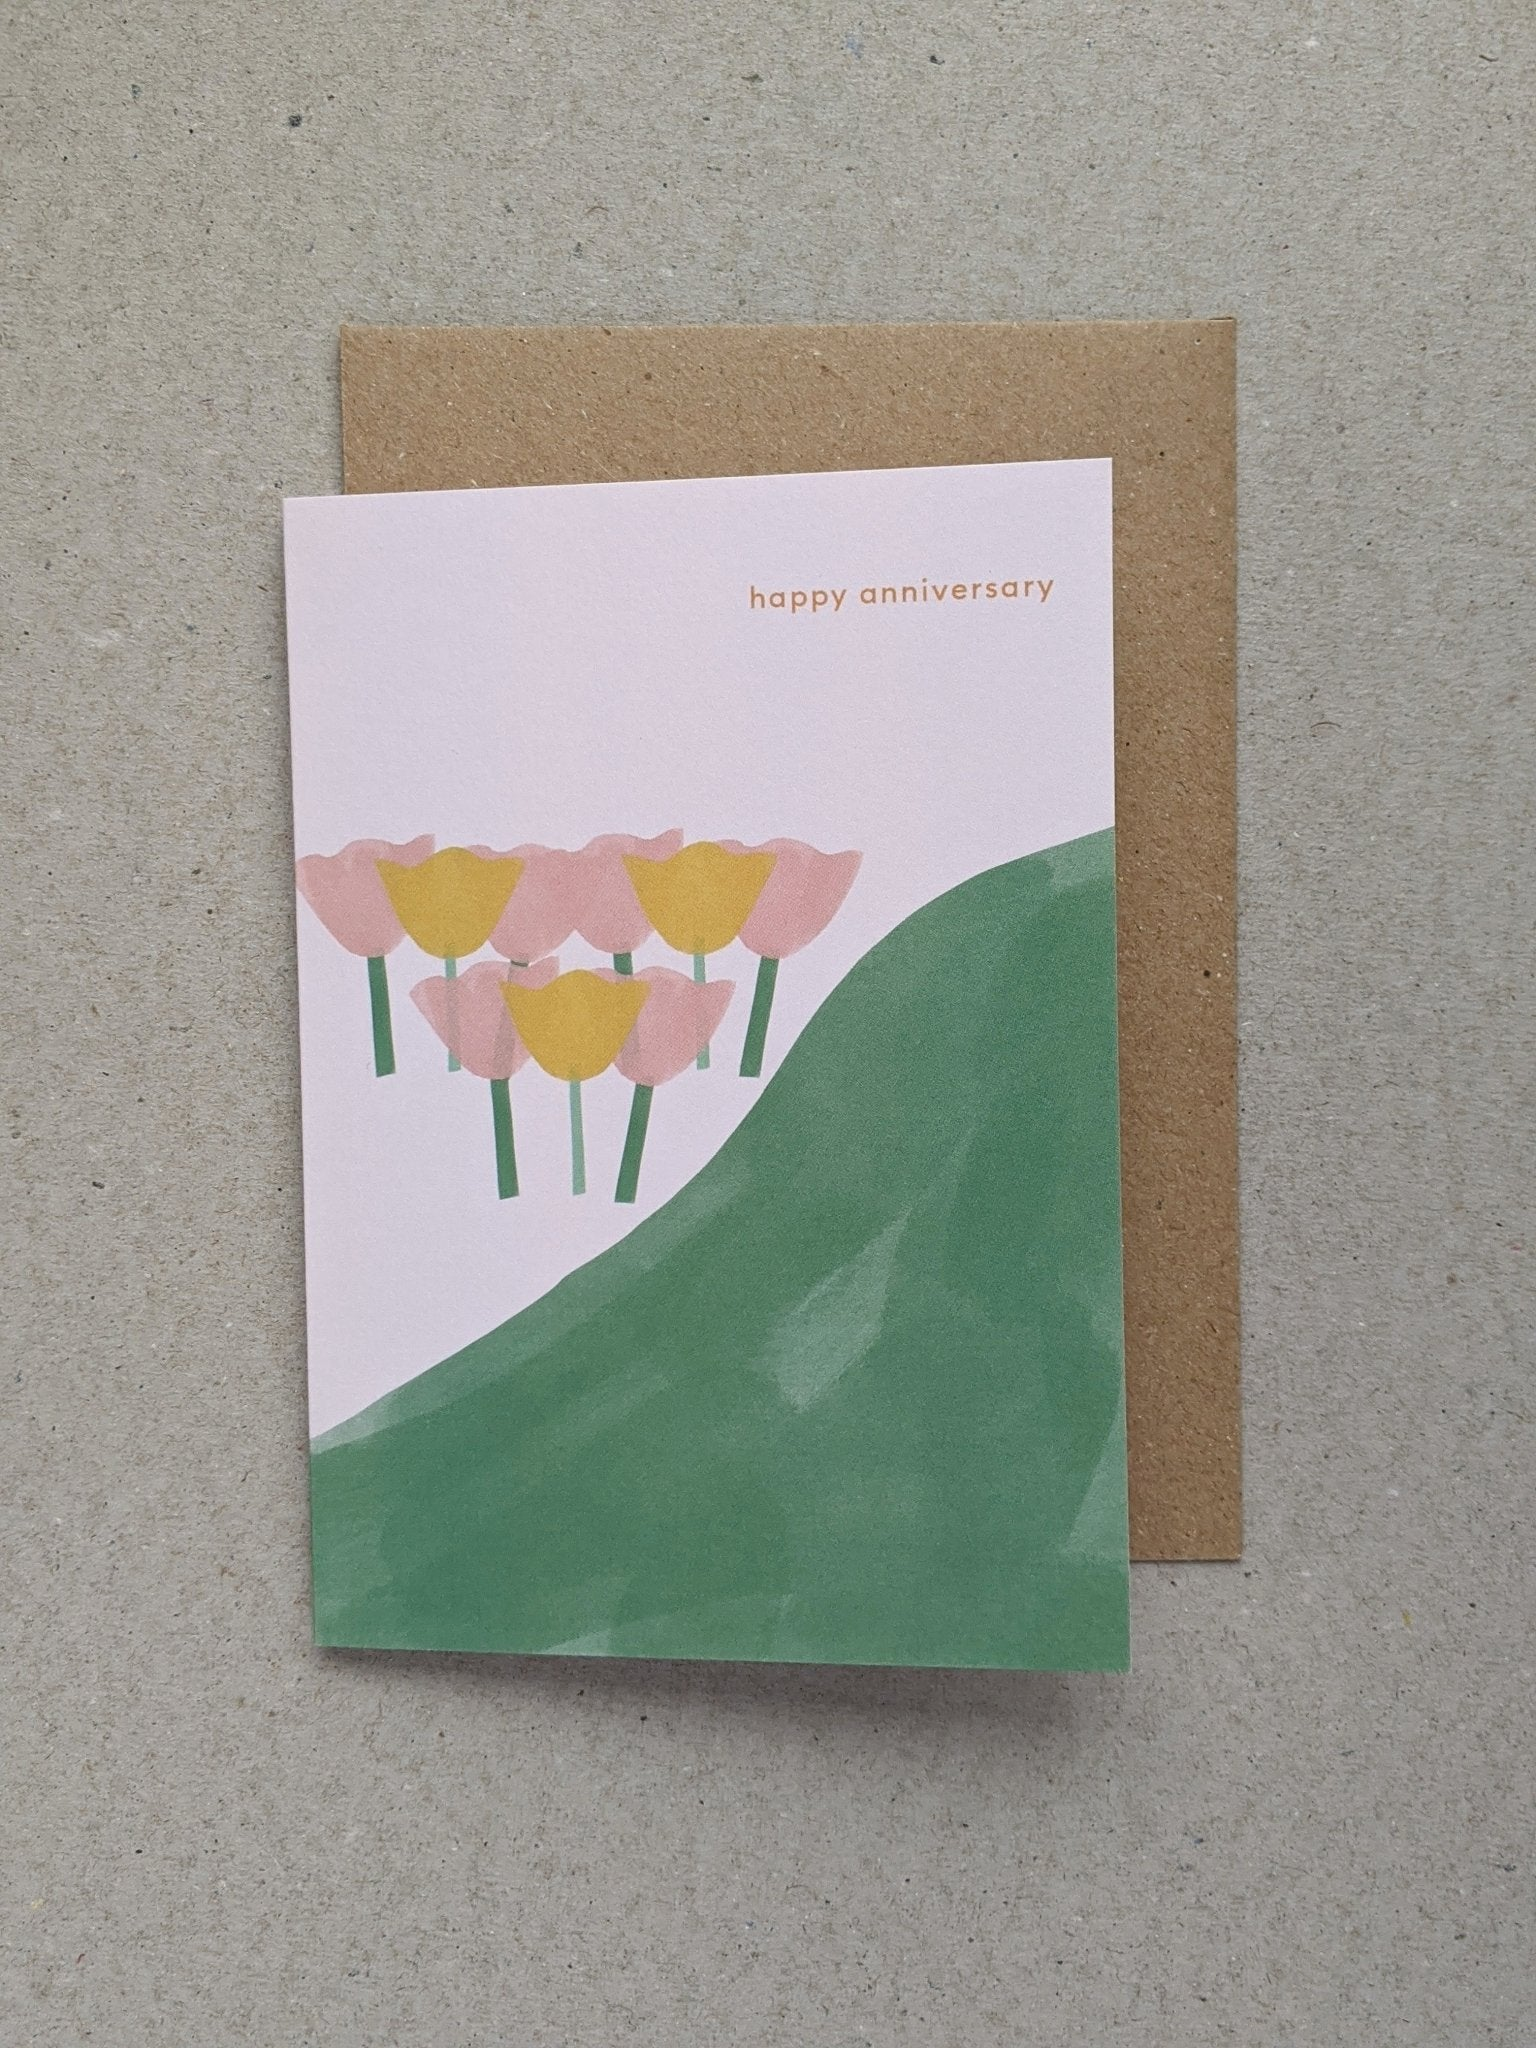 Happy Anniversary greetings card - The Stationery Cupboard